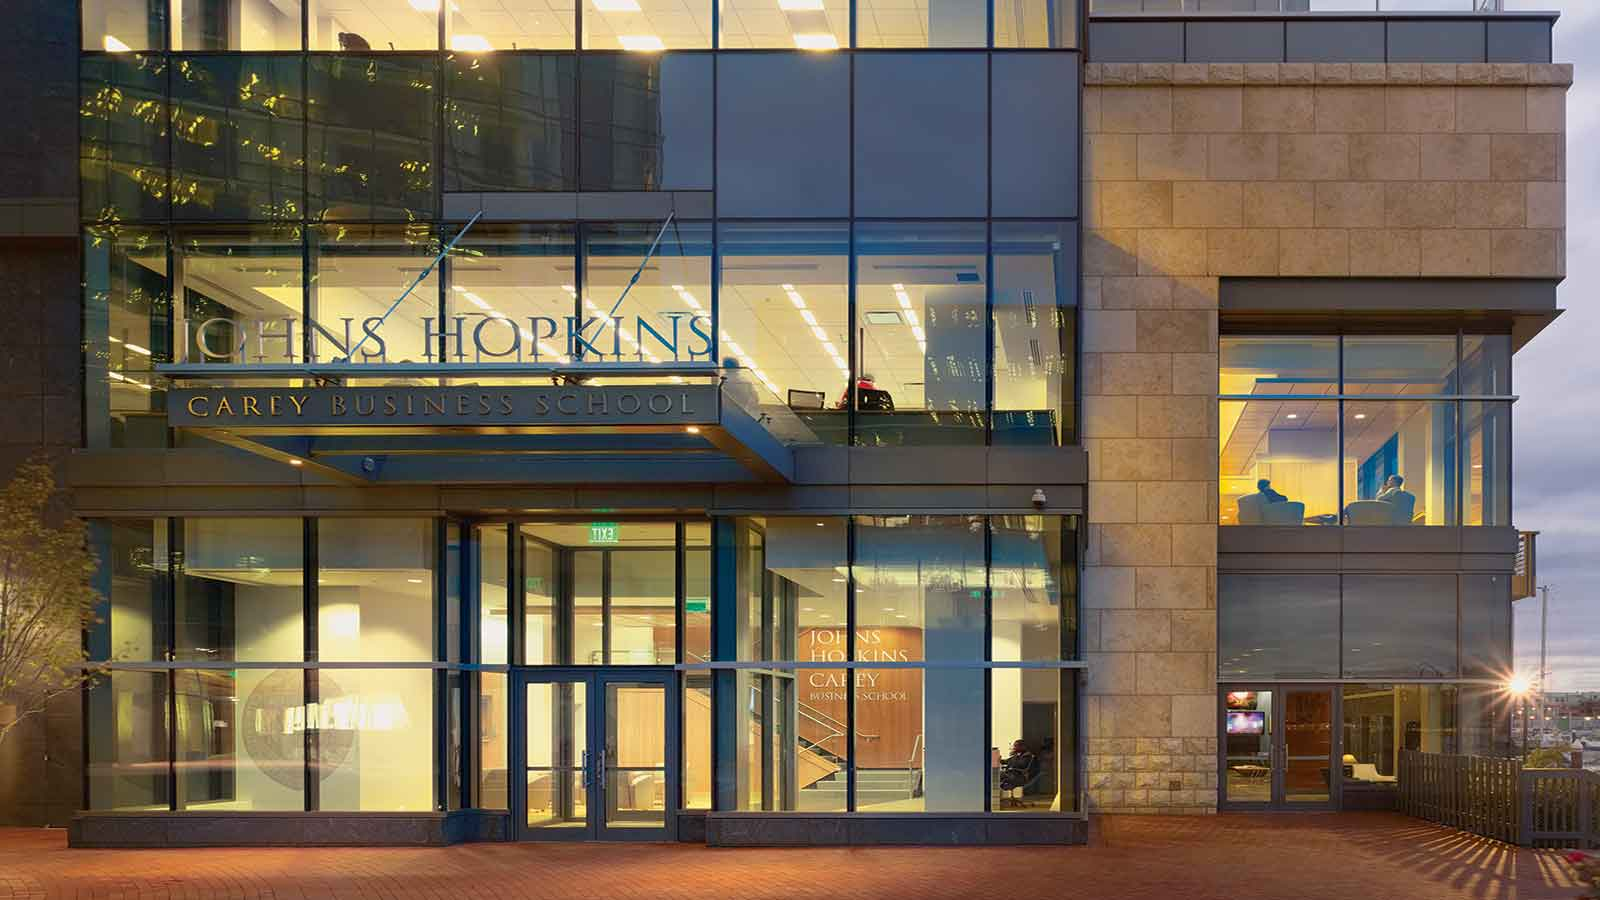 The entrance to the Johns Hopkins carey business school